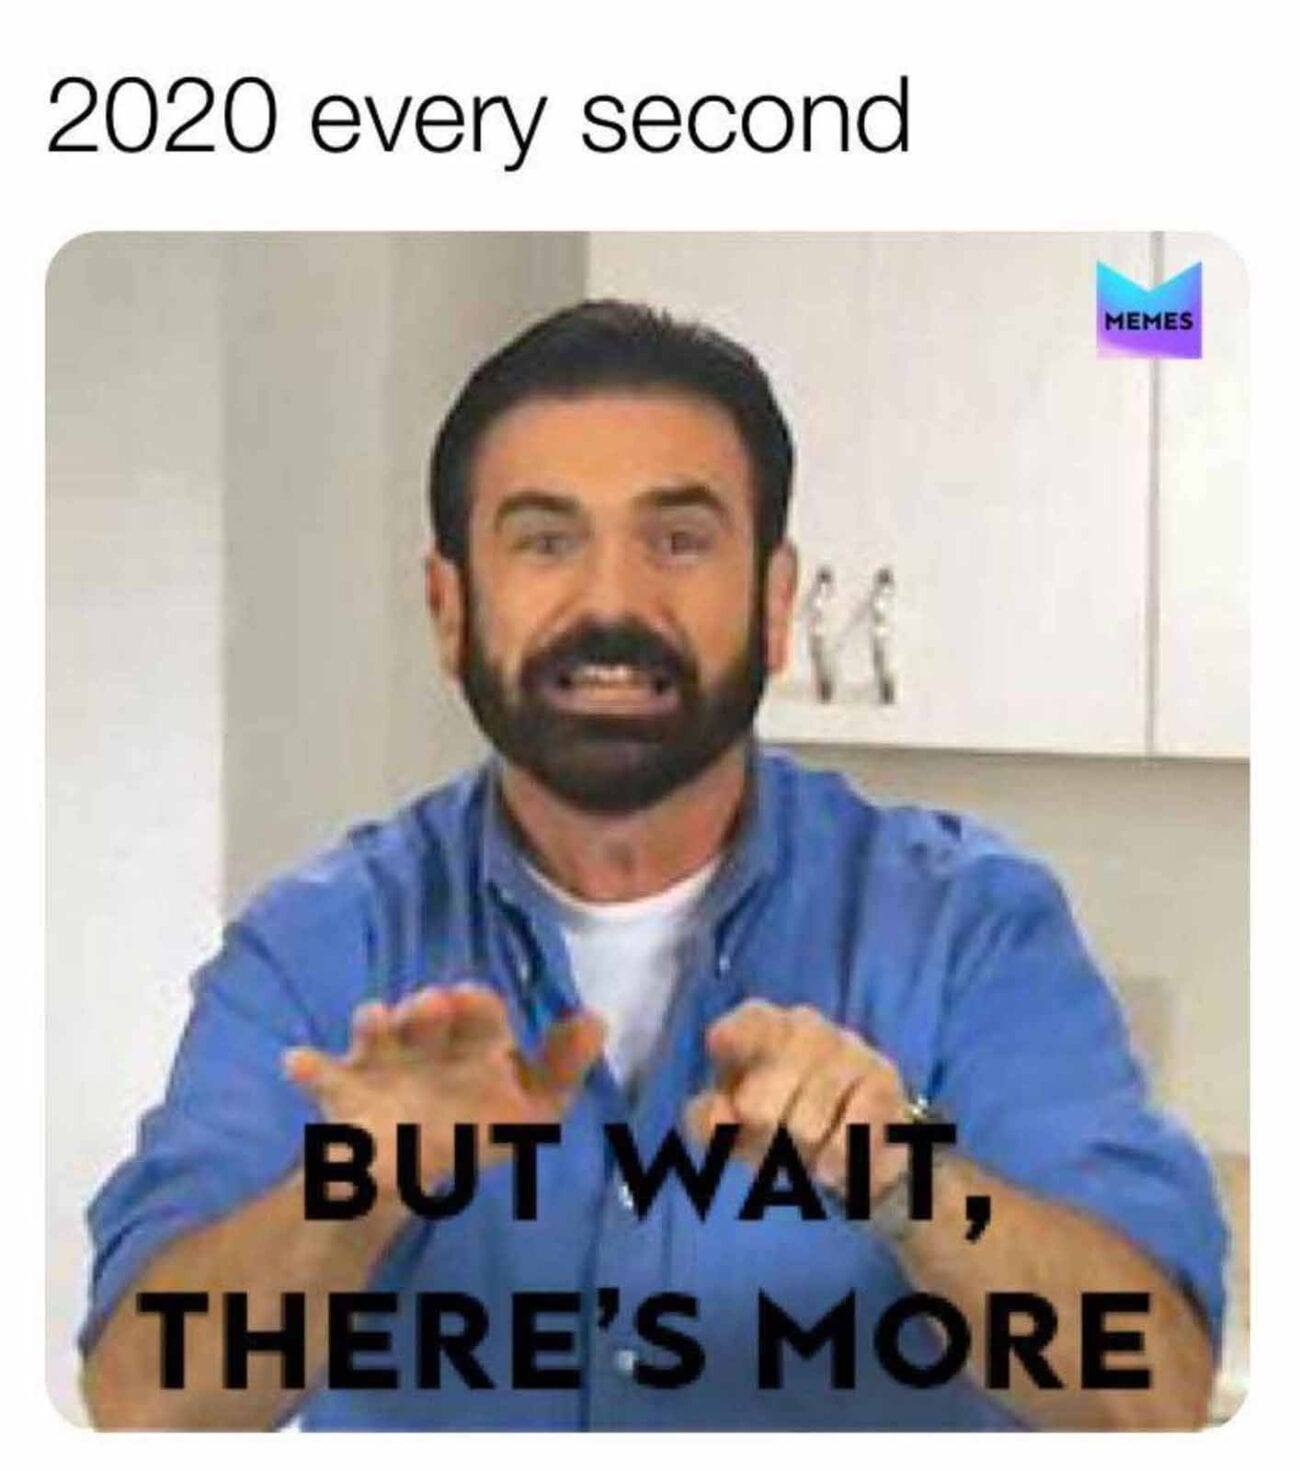 As the title for this article so plainly states, 2020 is a dumpster fire. Here are memes that perfectly describe the mess that is 2020.